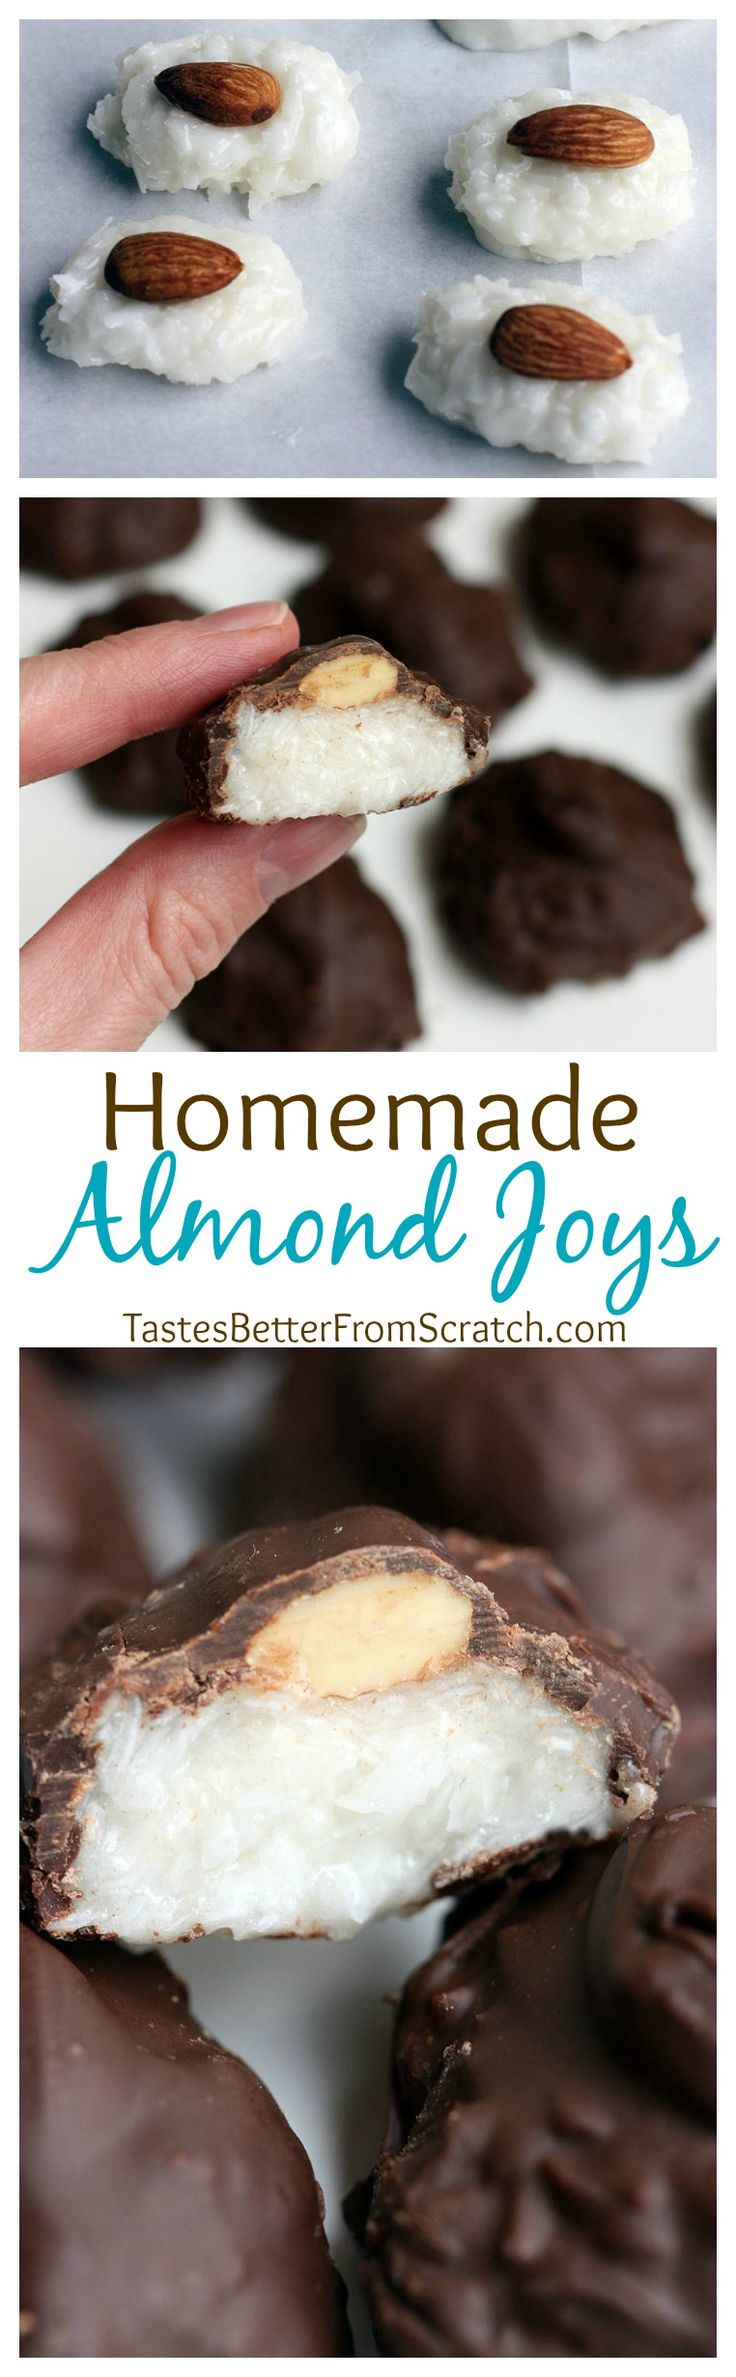 Homemade Almond Joys are a super easy candy to make and one of our favorites! Coconut, almonds, and chocolate come together in the best easy treat--great for gifts and for a fun holiday treat! | Tastes Better From Scratch